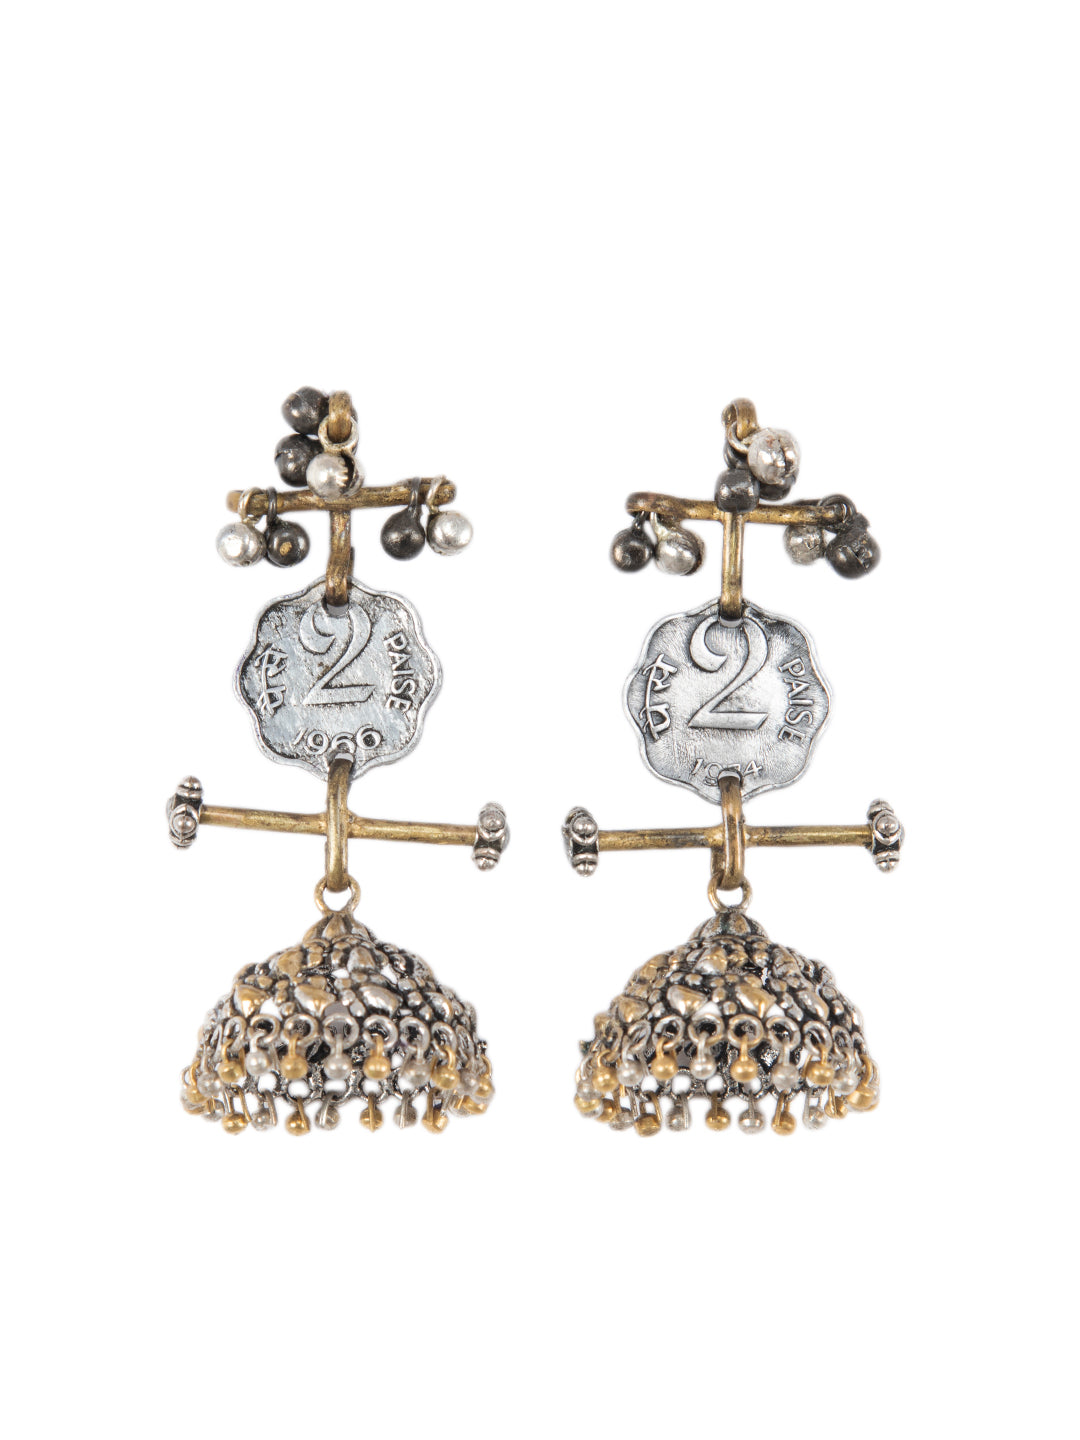 Vintage Dual Tone Earrings with Coins- Do paisa